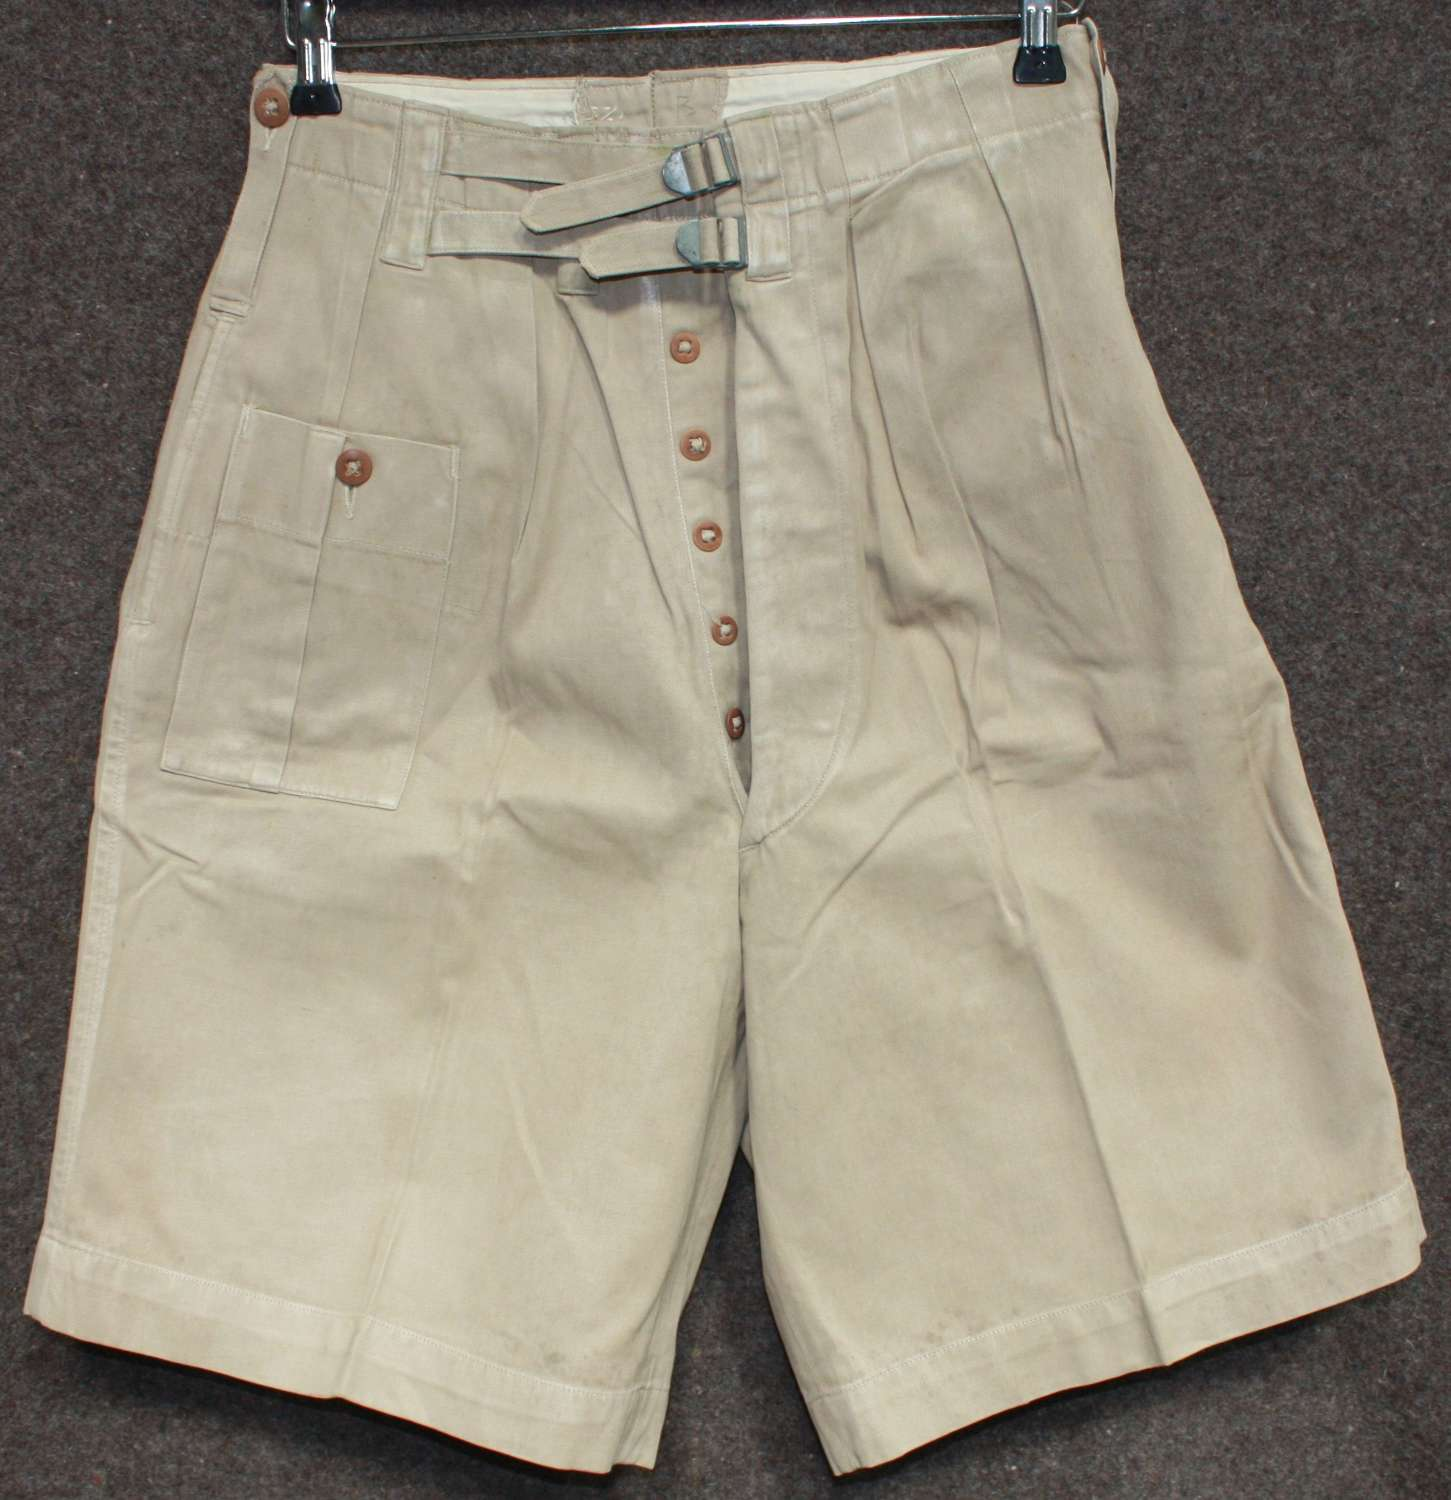 US WWII WAR AID 41 PATTERN SHORTS